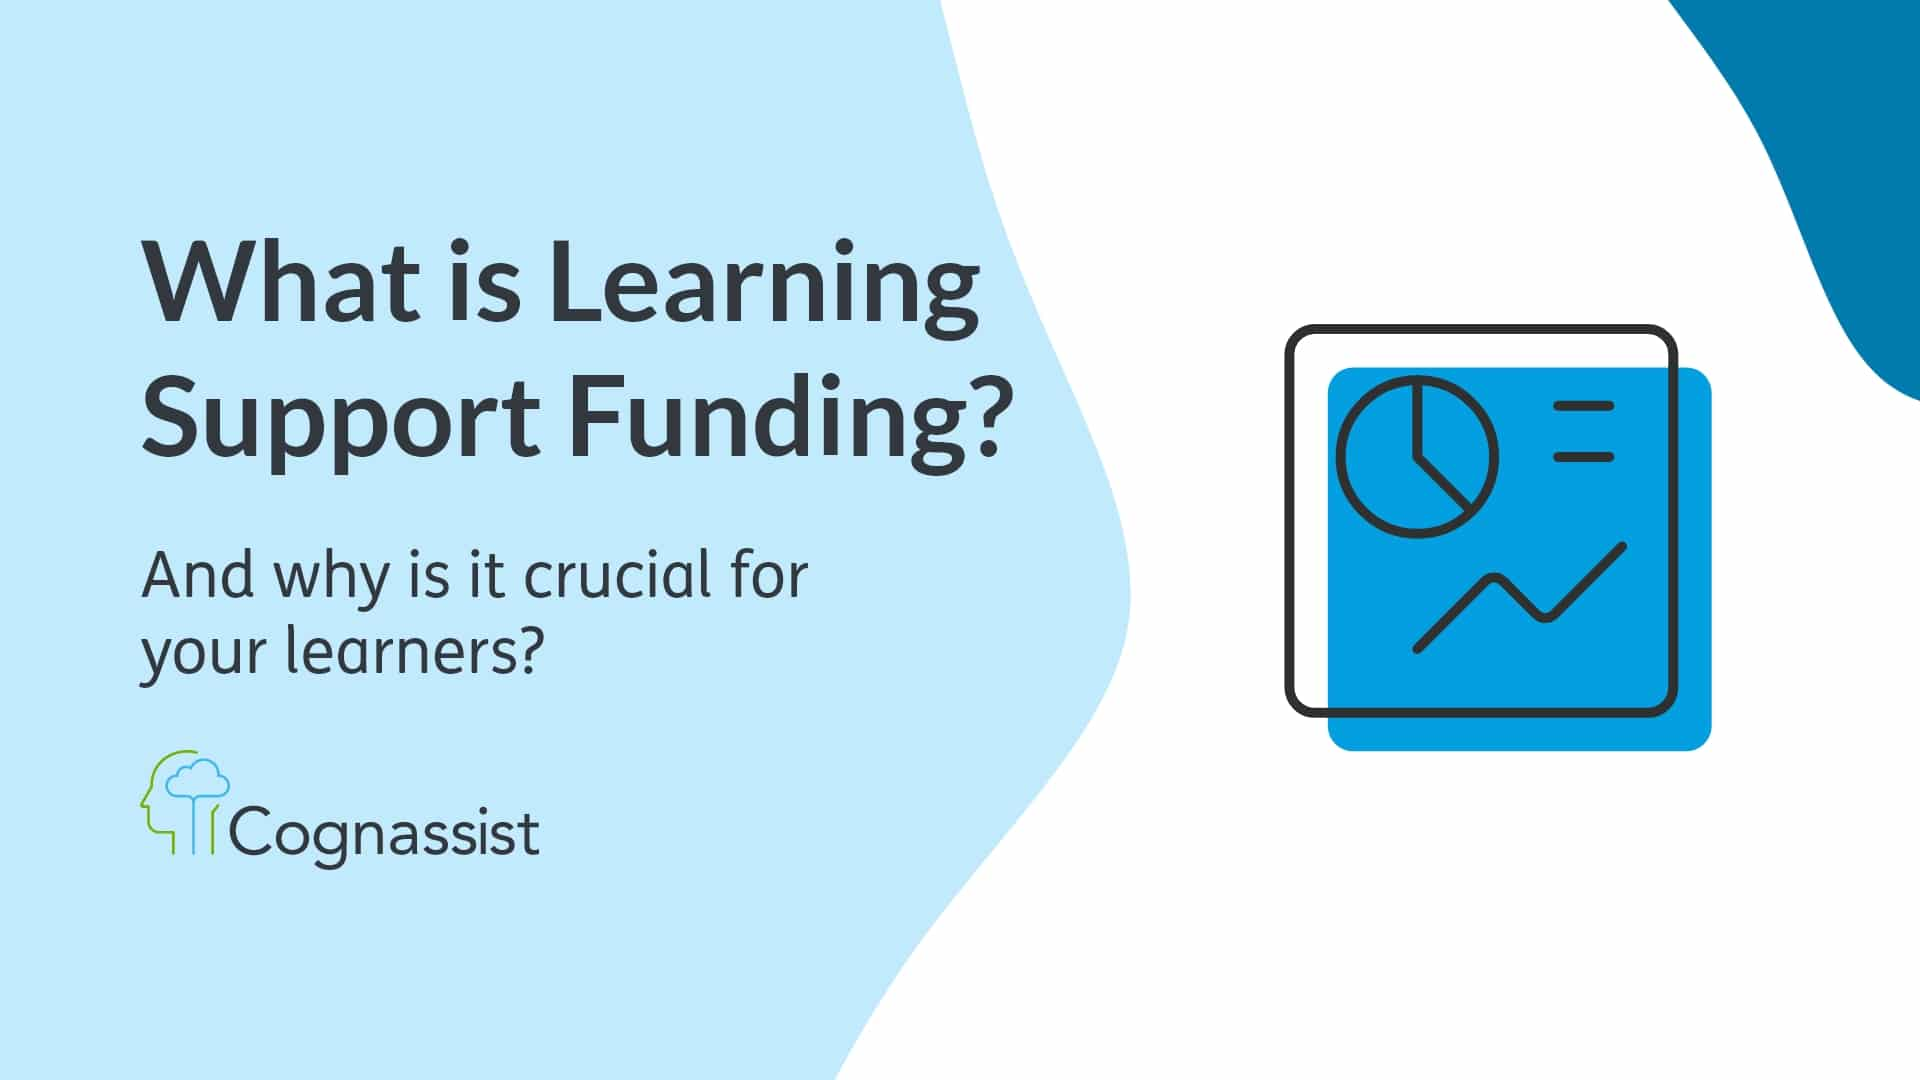 Guide to Learning Support Funding